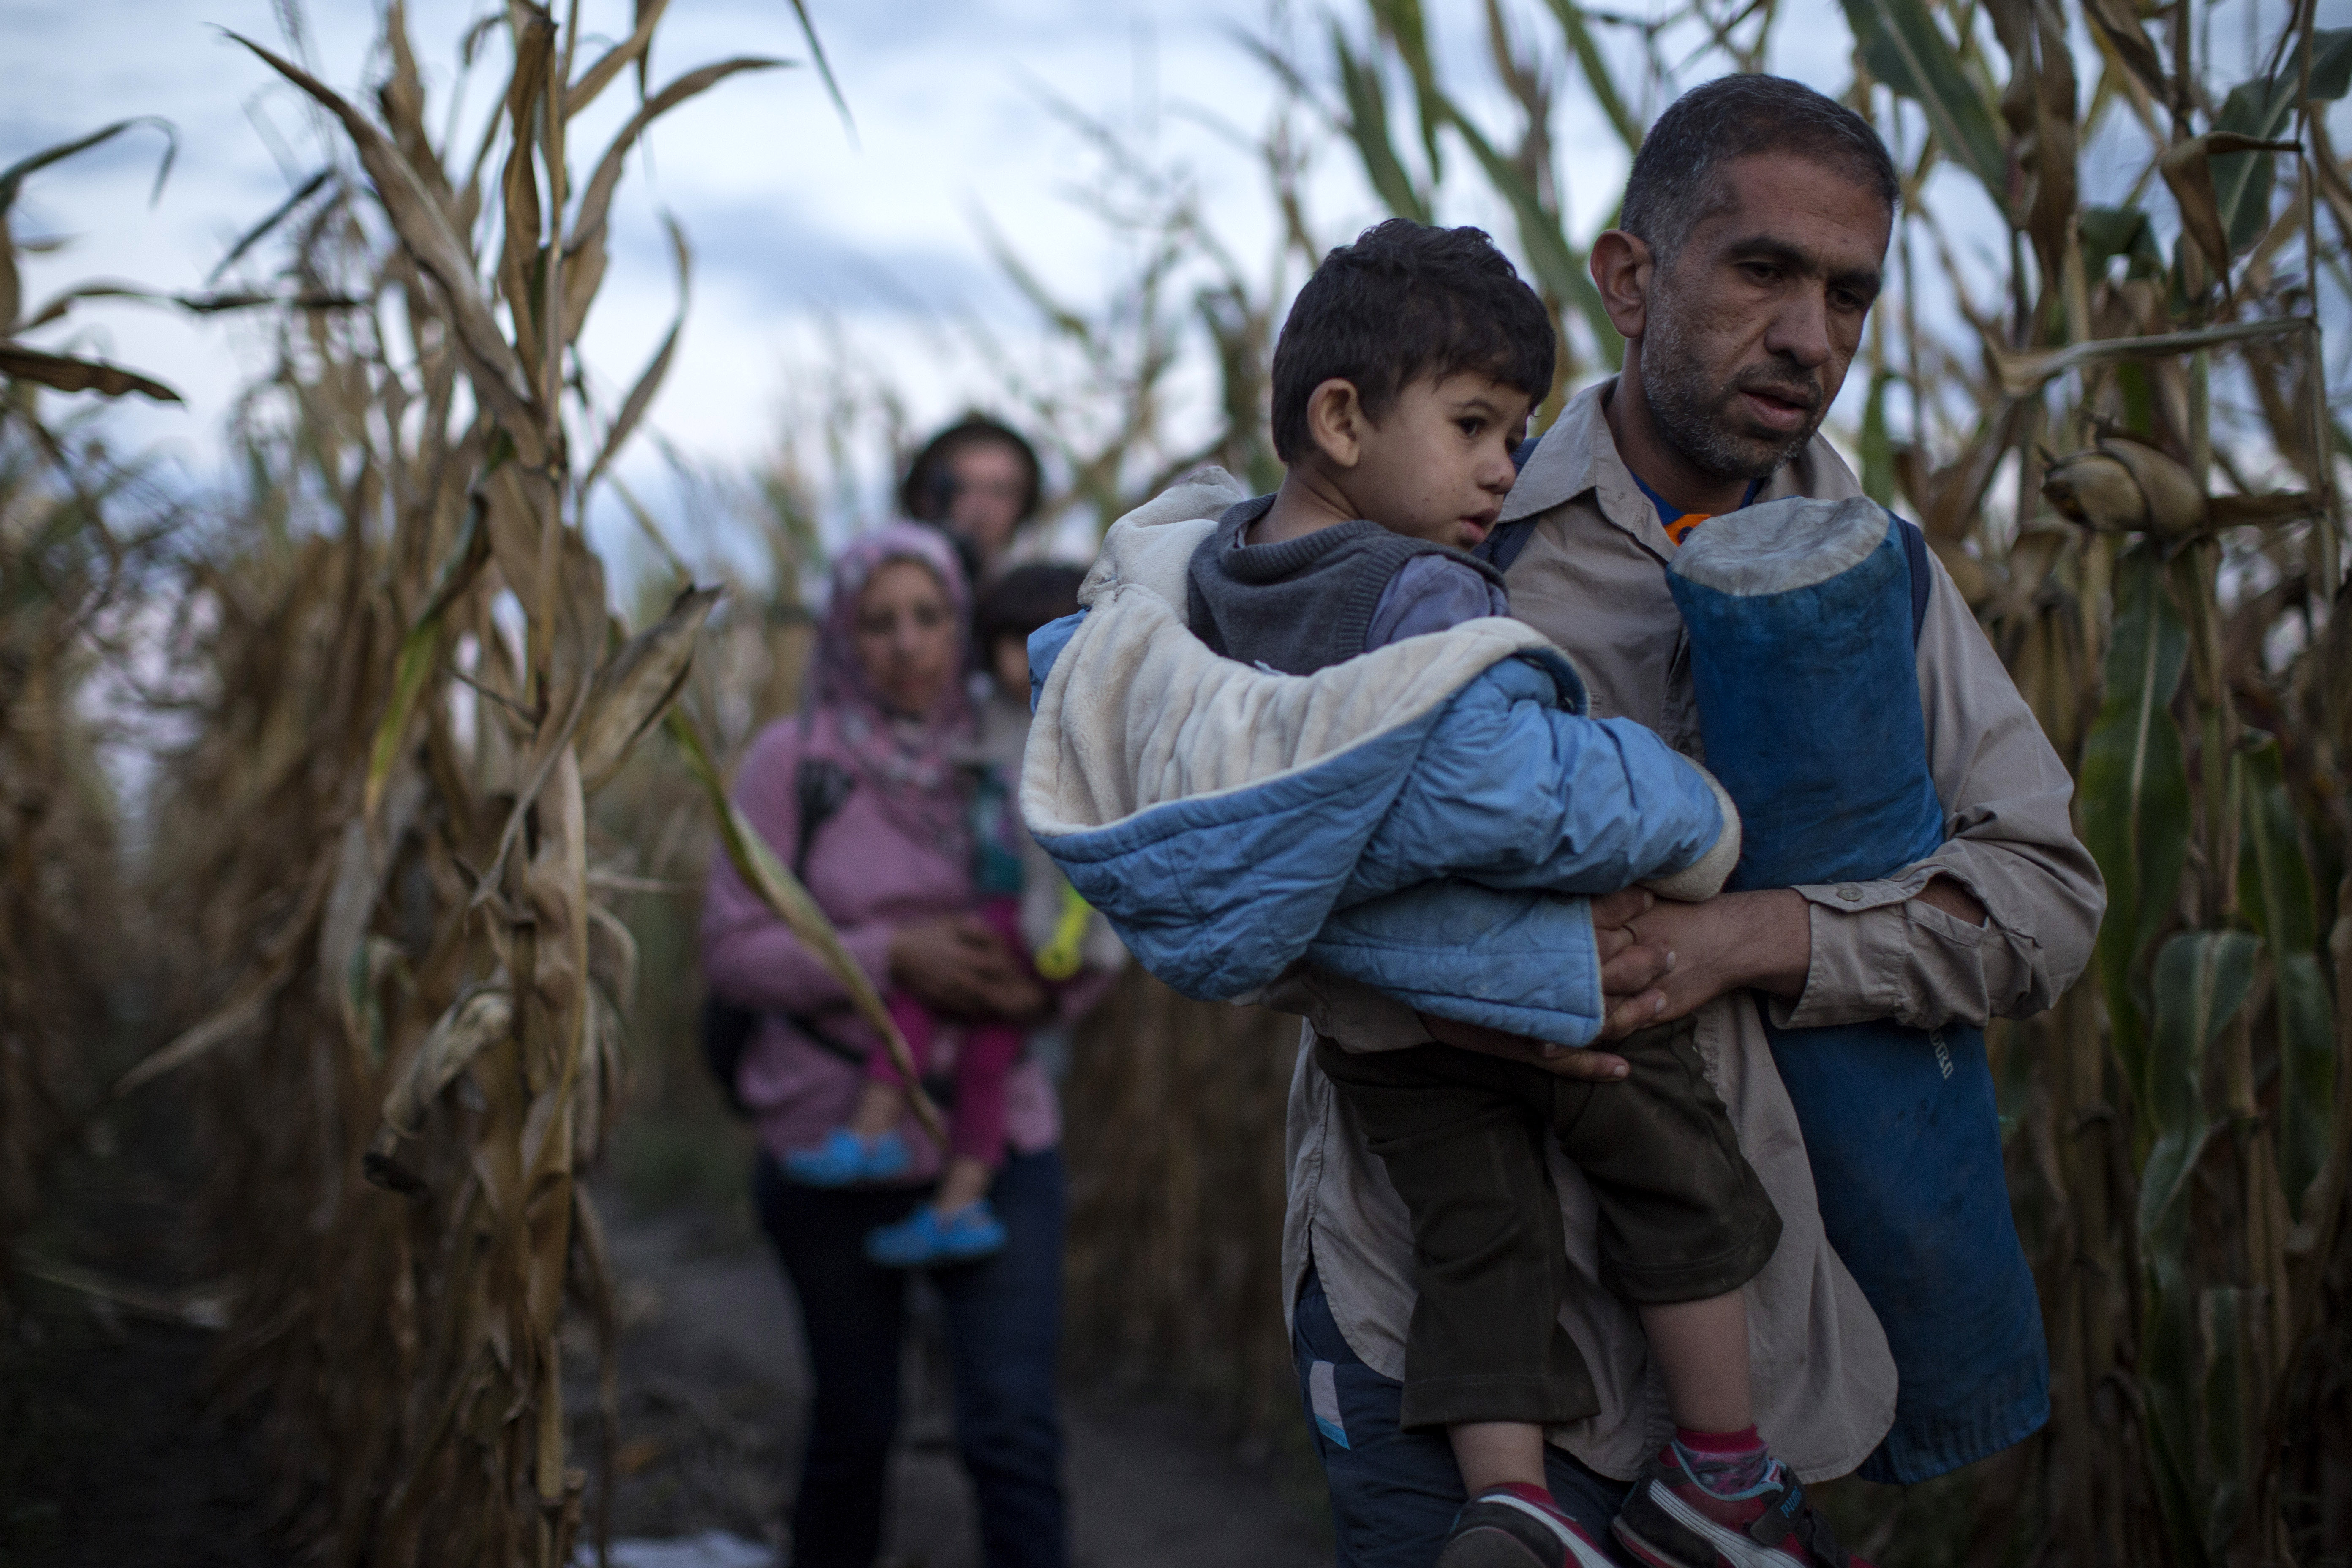 Refugees are smuggled through fields and forests in an attempt to evade the Hungarian police close to the Serbian border on Sept. 8, 2015 in Roszke, Hungary.